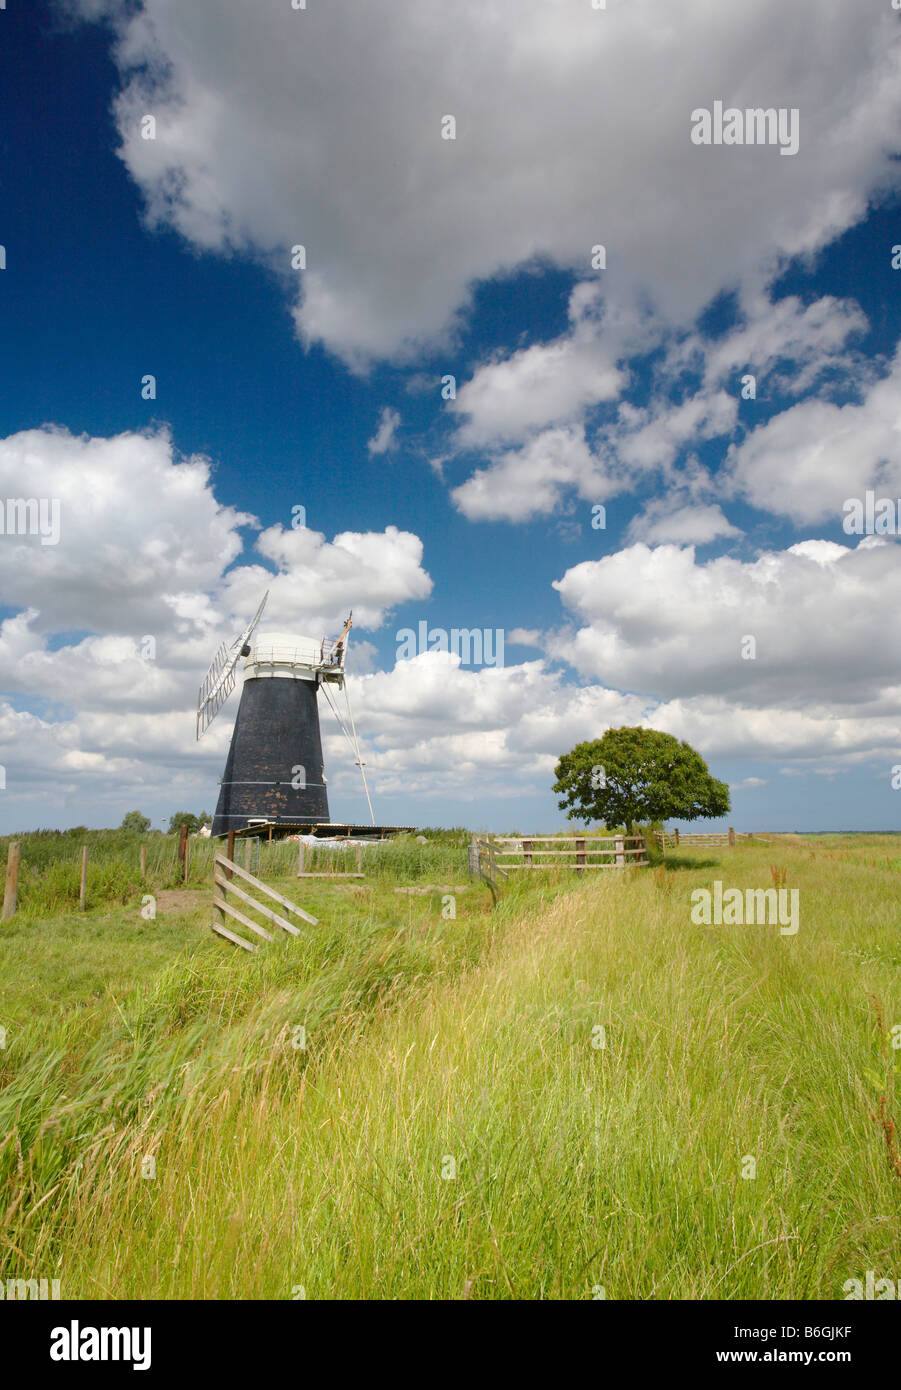 Drainage moutons moulin, sur le Marais Halvergate, Norfolk Broads Photo Stock